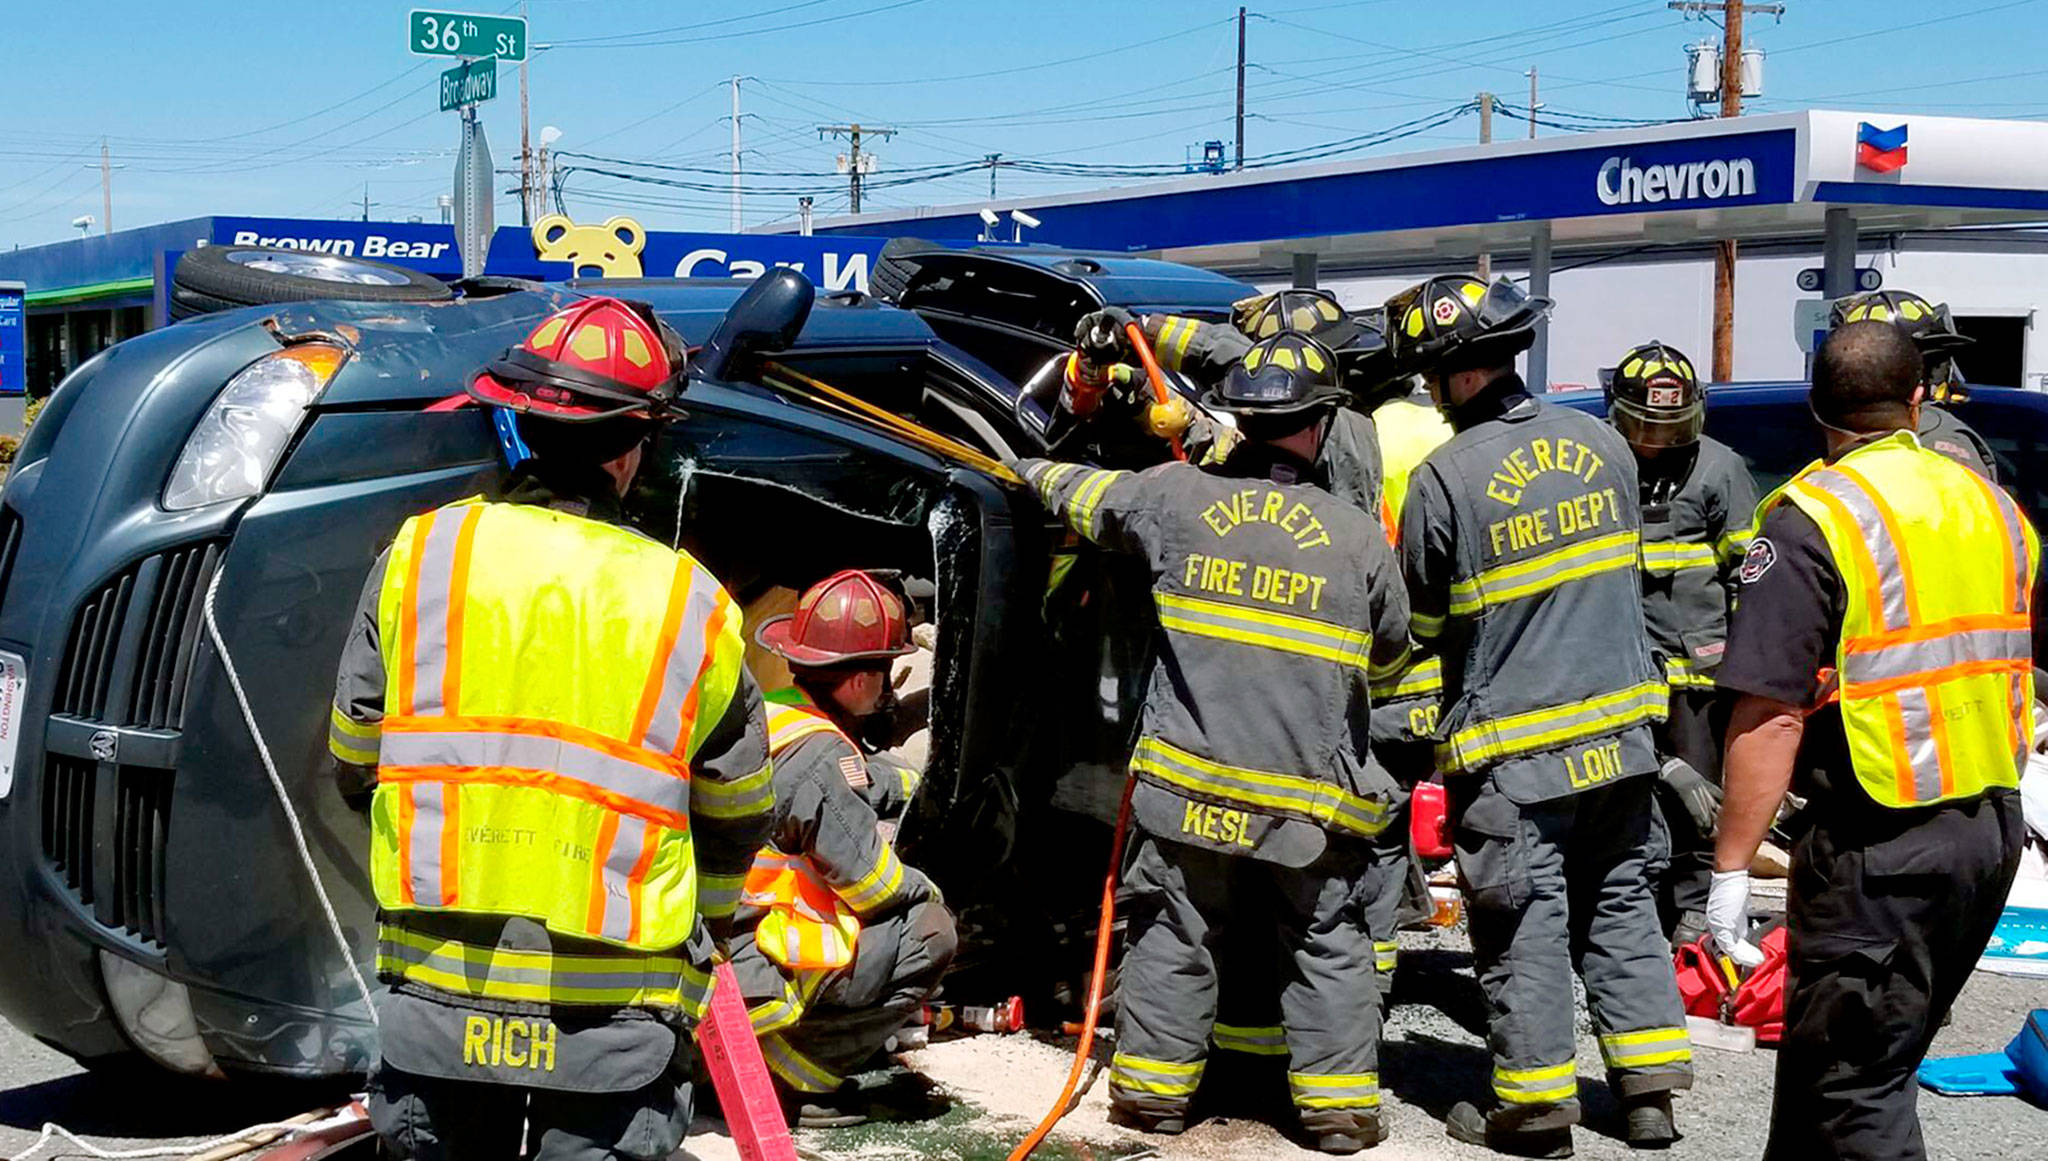 Firefighters work to extricate the driver of a car that rolled over Tuesday afternoon at the intersection of Broadway and 36th Street in Everett. (Everett Fire Department)